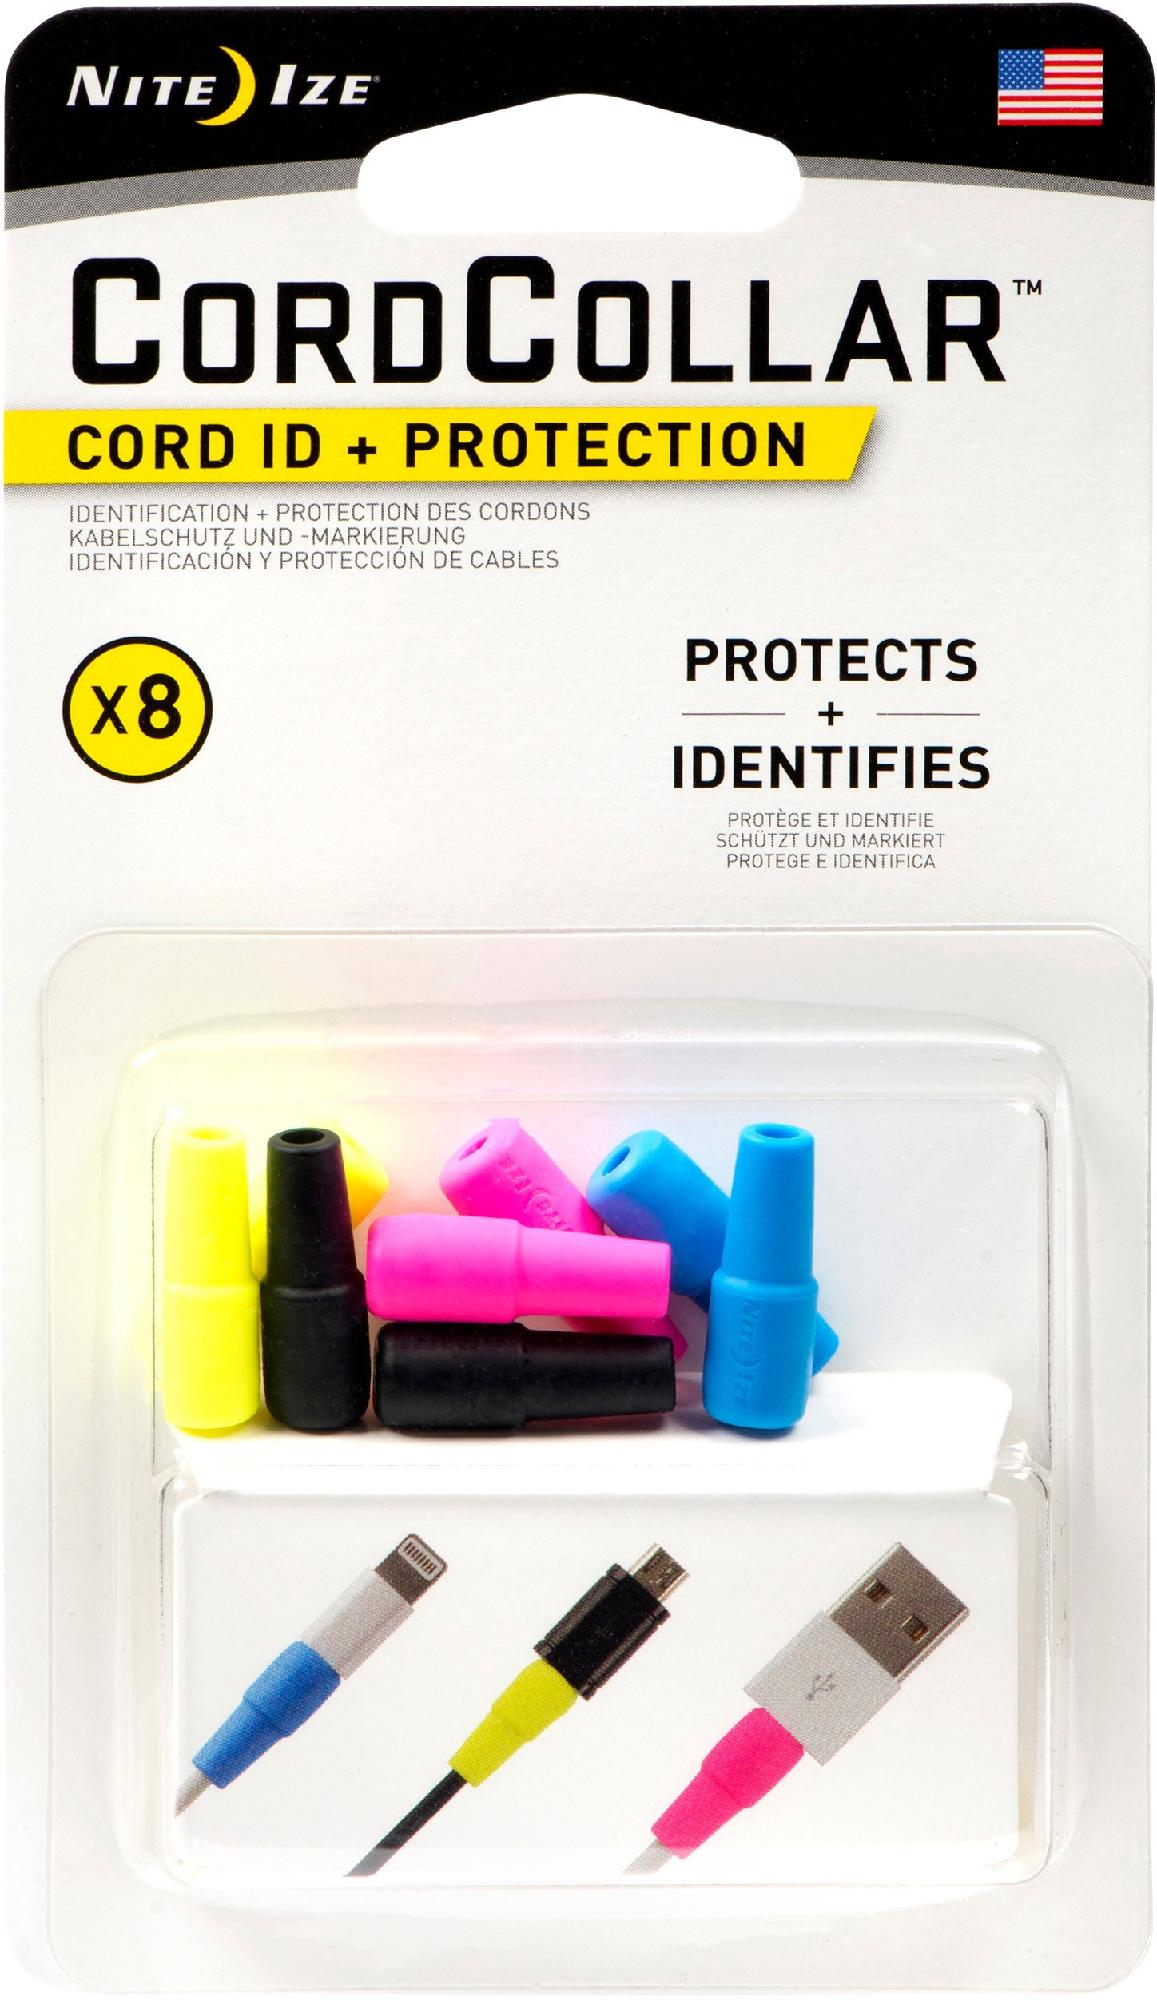 Nite Ize CordCollar Cord ID + Protection